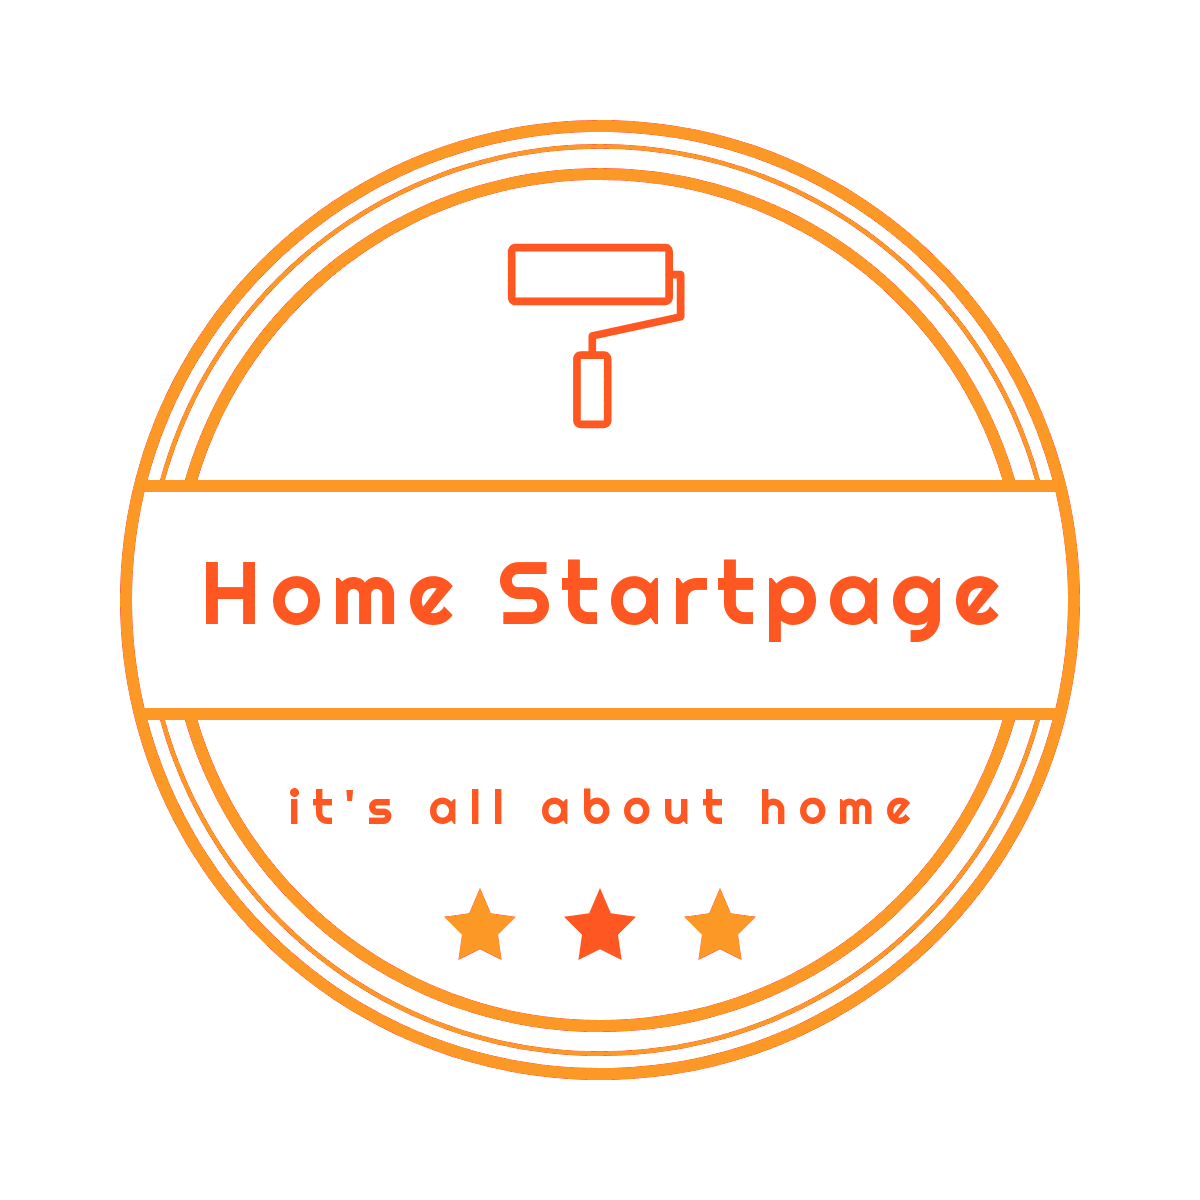 Home-startpage